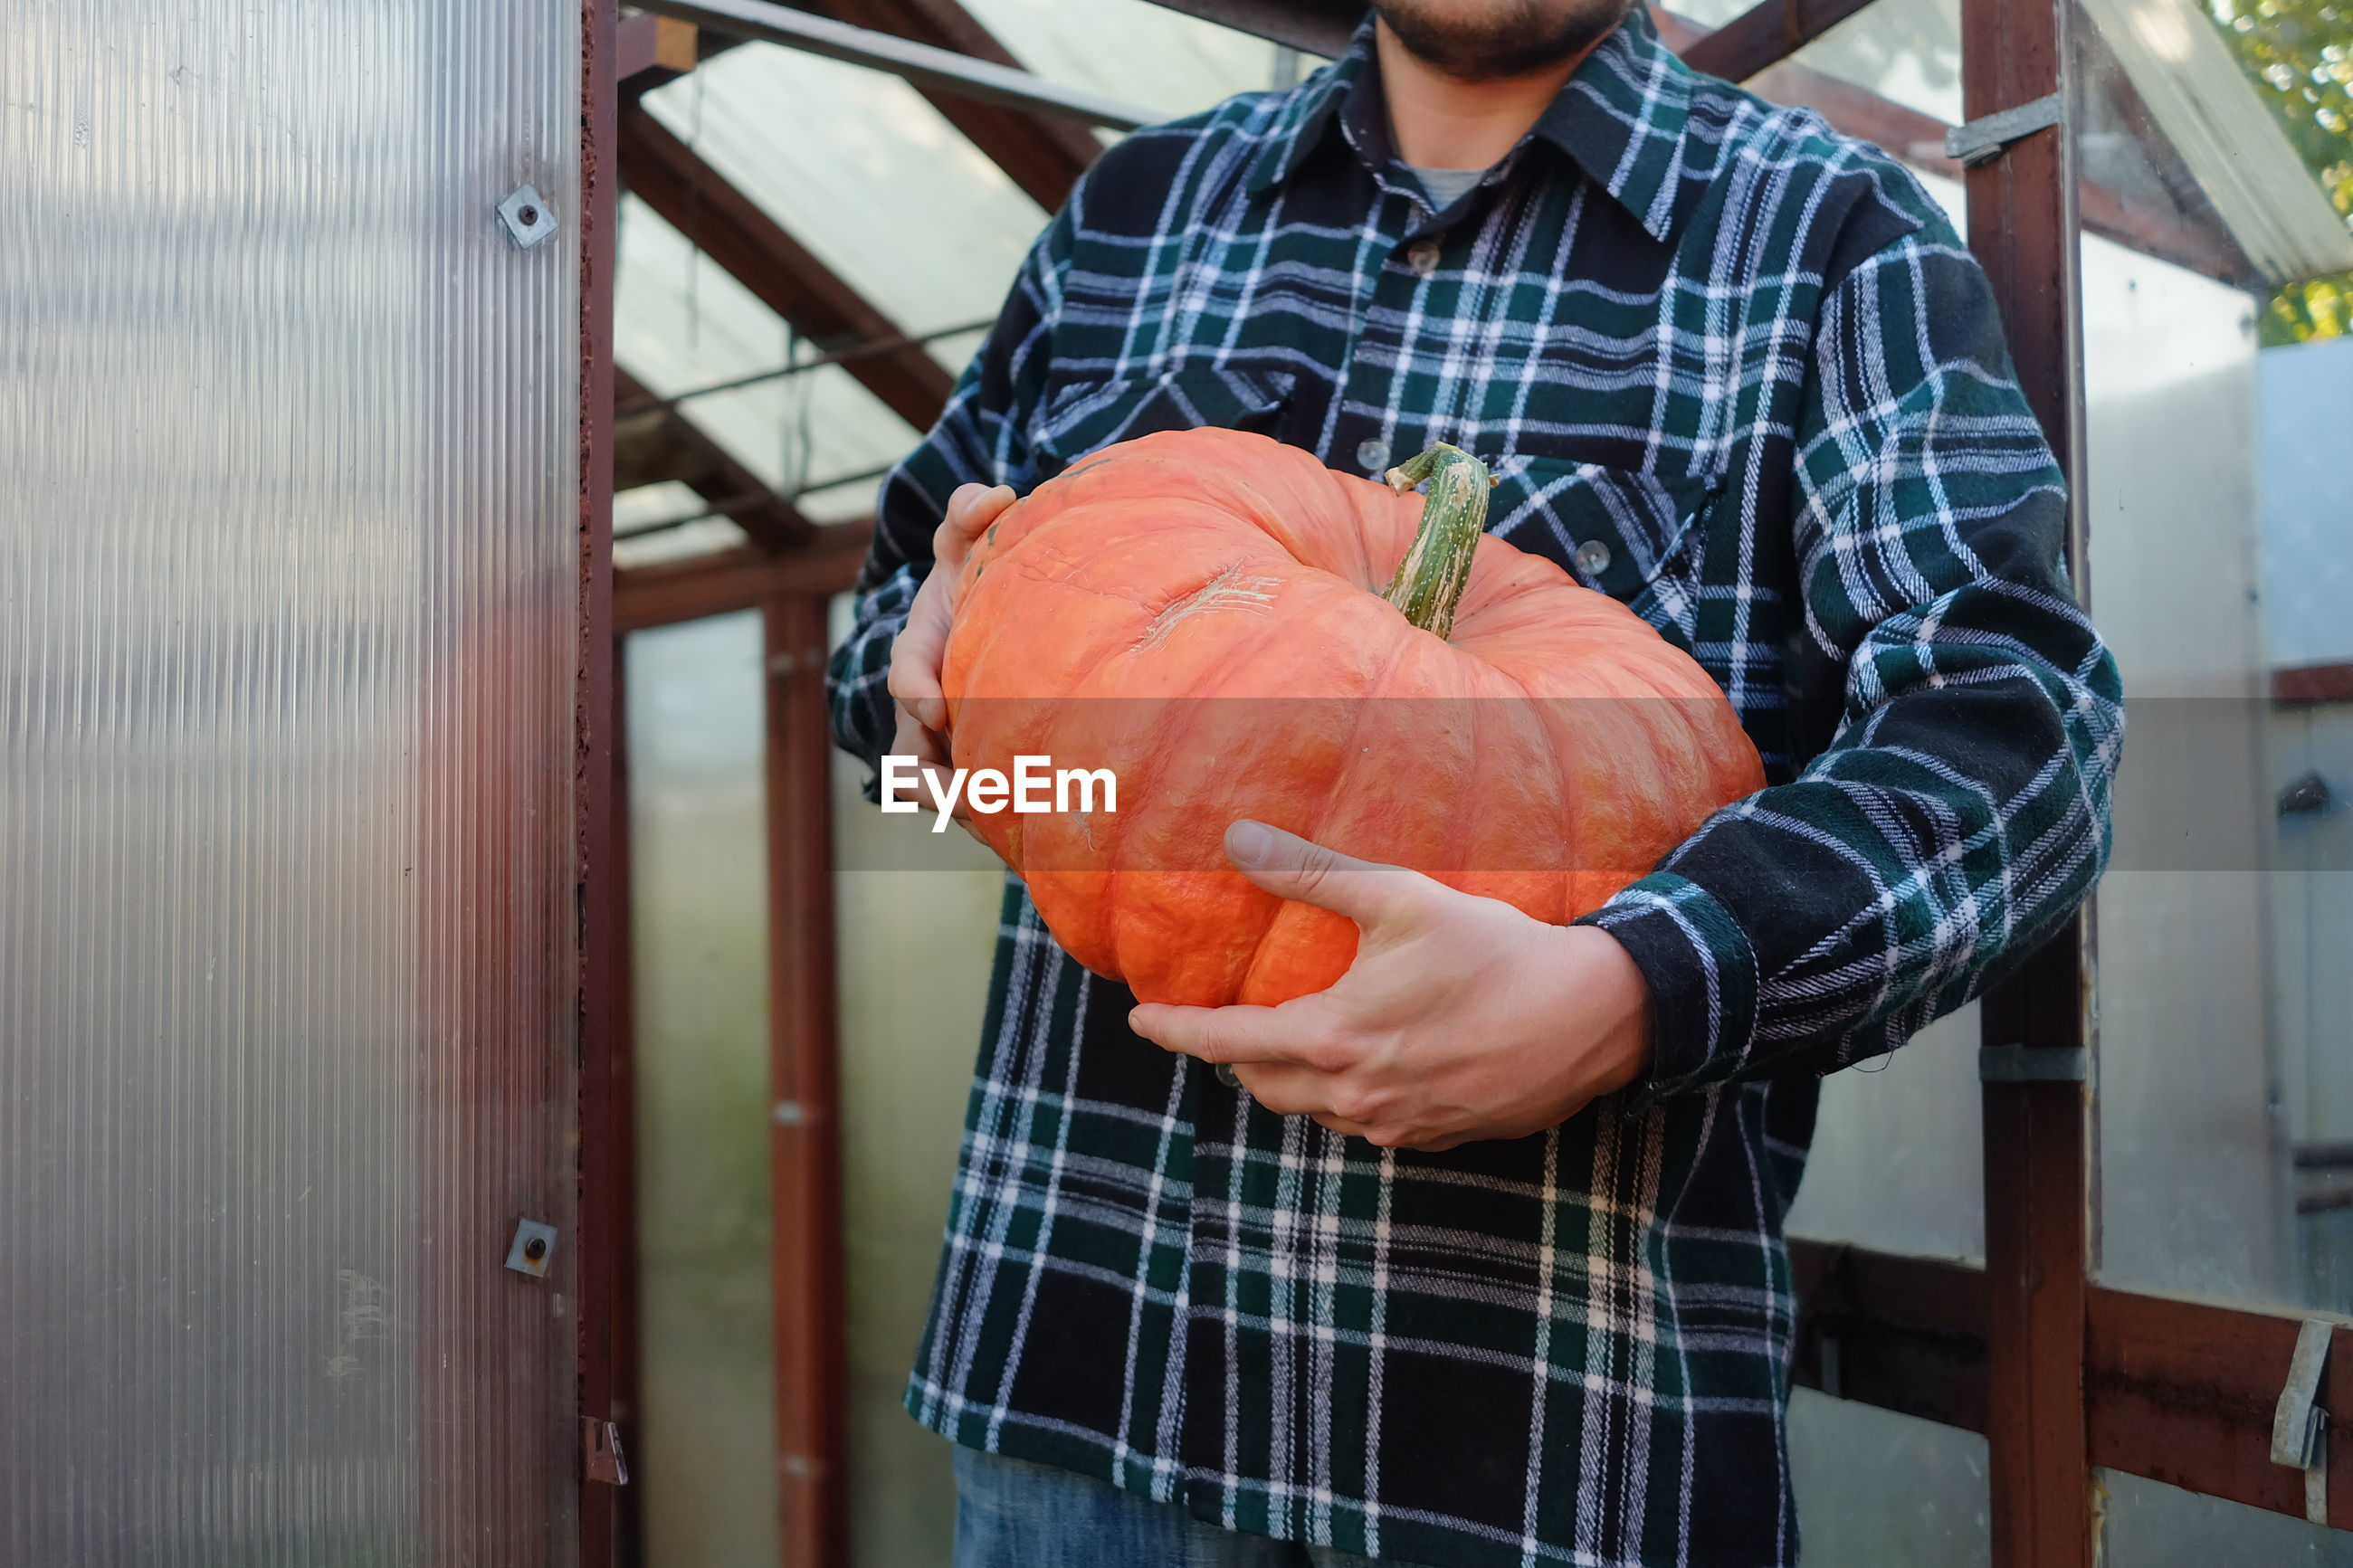 MIDSECTION OF MAN HOLDING PUMPKIN WHILE STANDING ON METAL